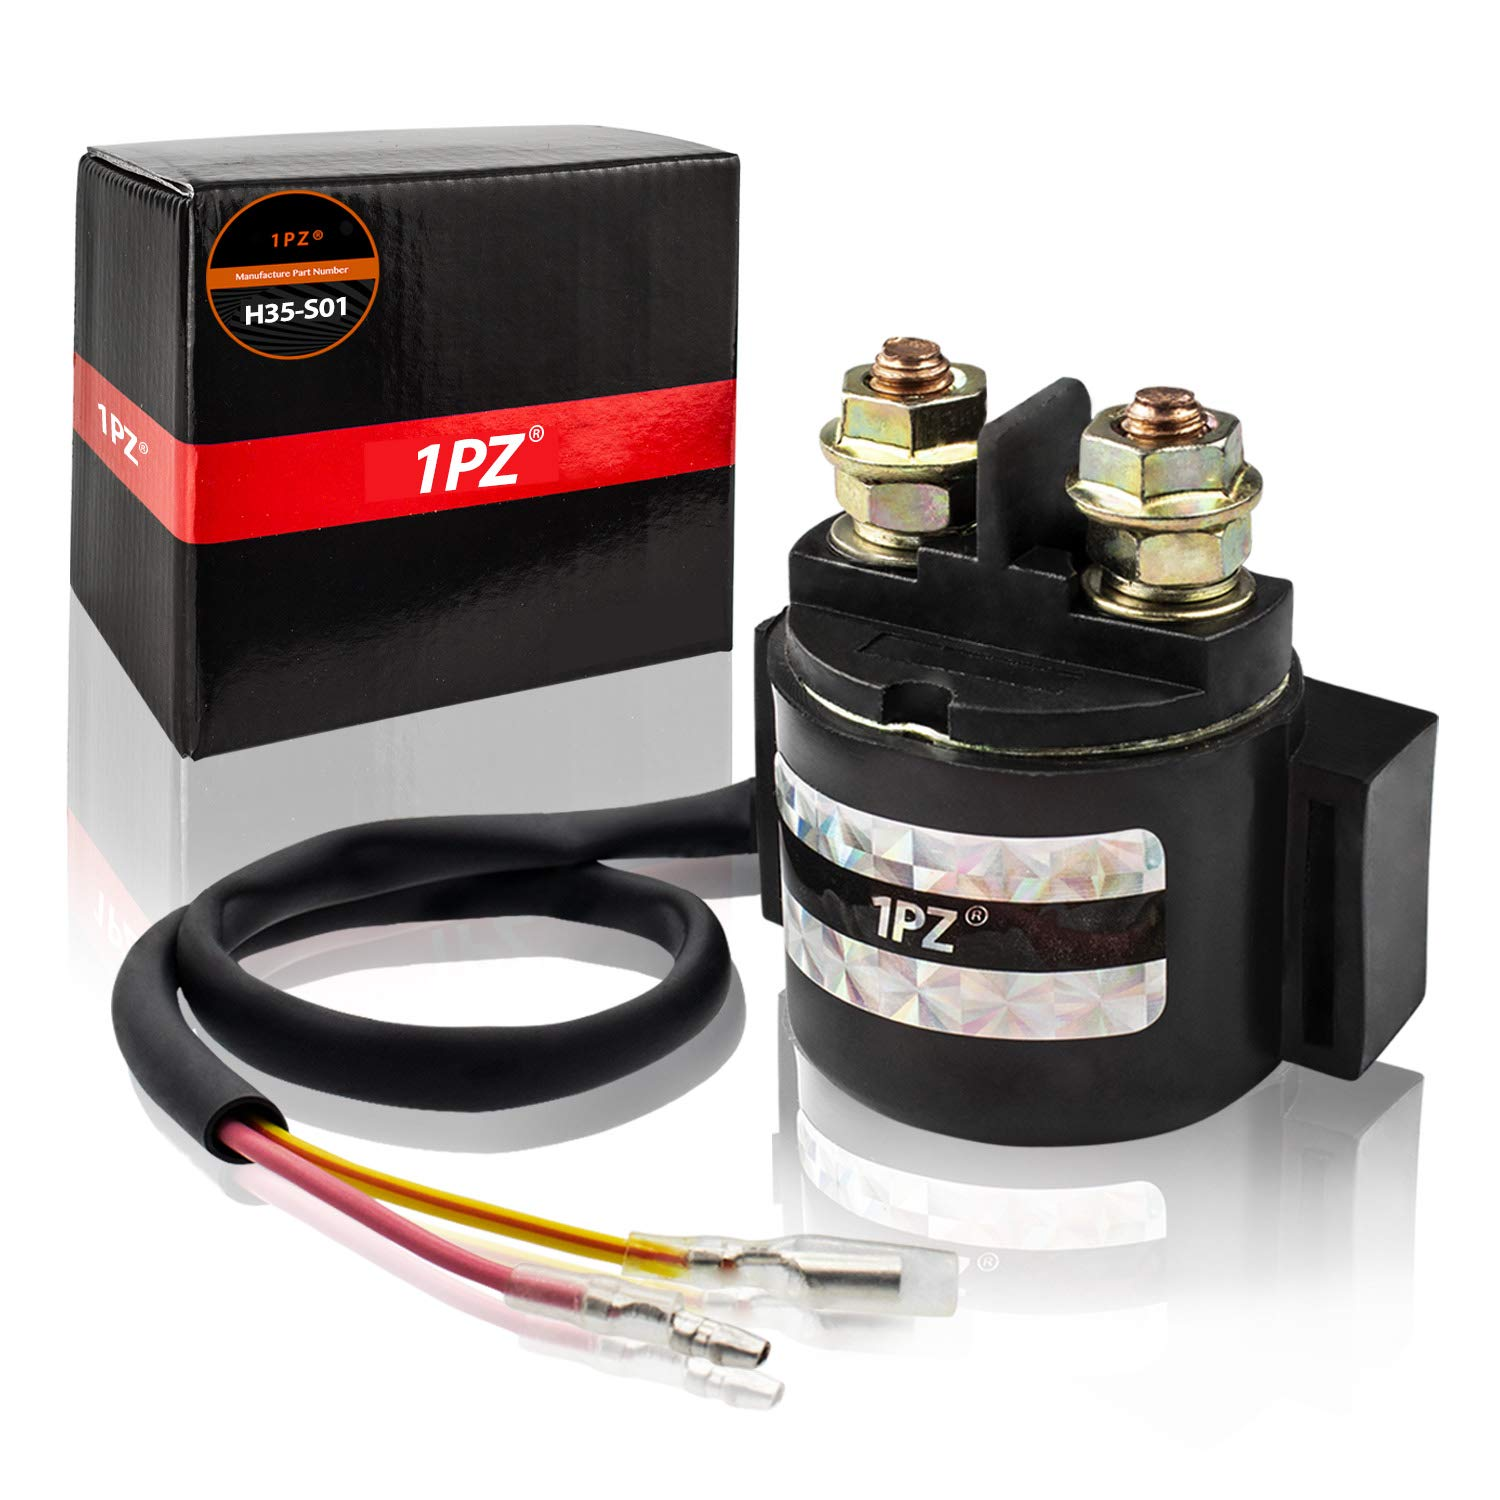 1PZ H35-S01 Premium Starter Solenoid Relay for Honda TRX250 TRX 250 Fourtrax Recon ATV 1997-2008 by 1PZ